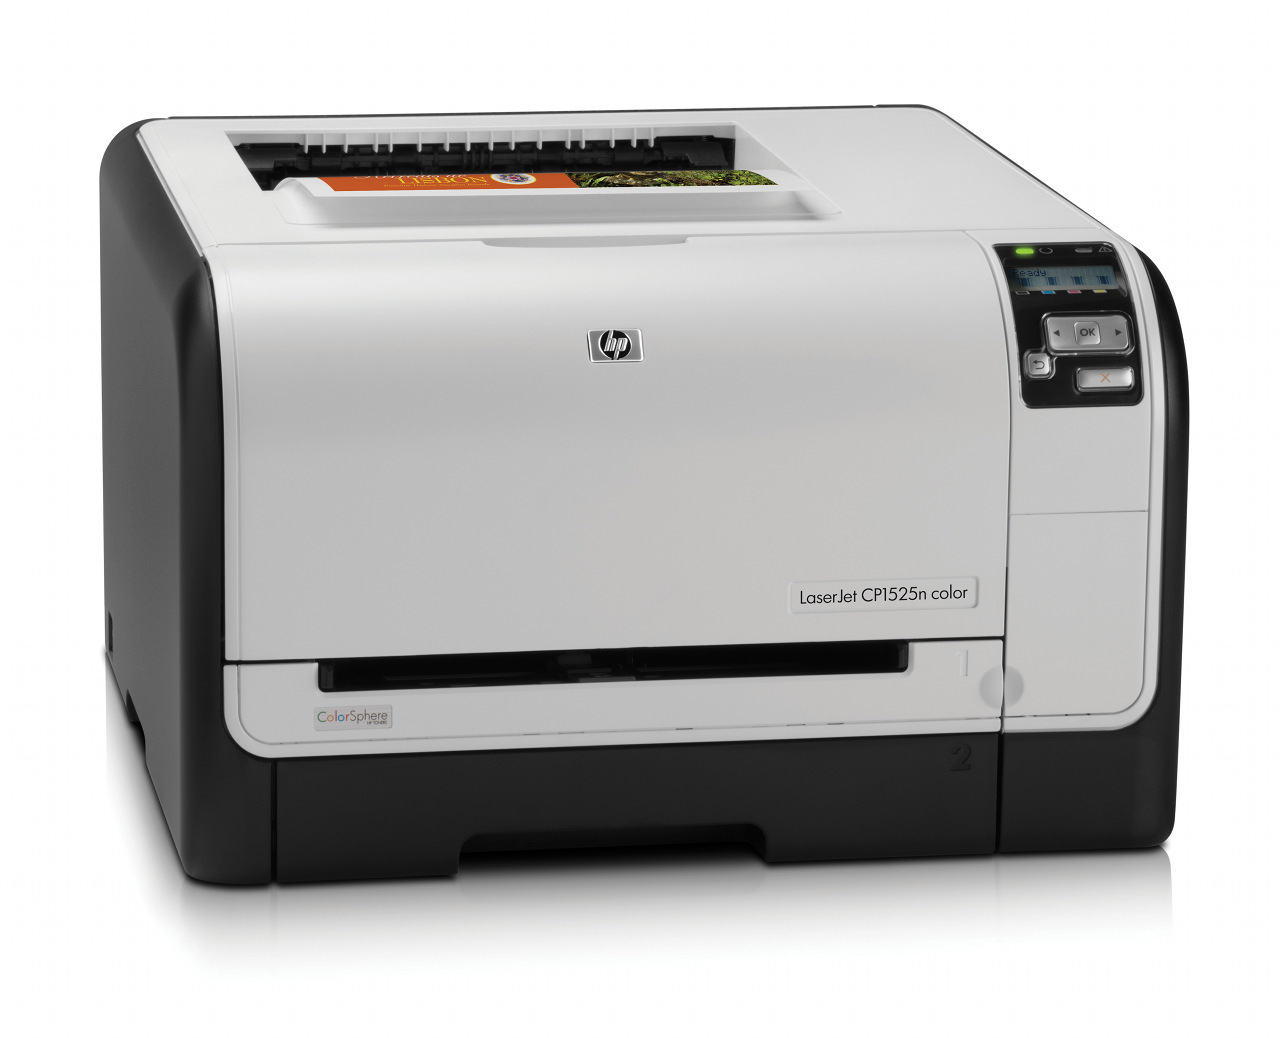 HP LaserJet CP1525n Colour Laser Printer CE874A - Refurbished